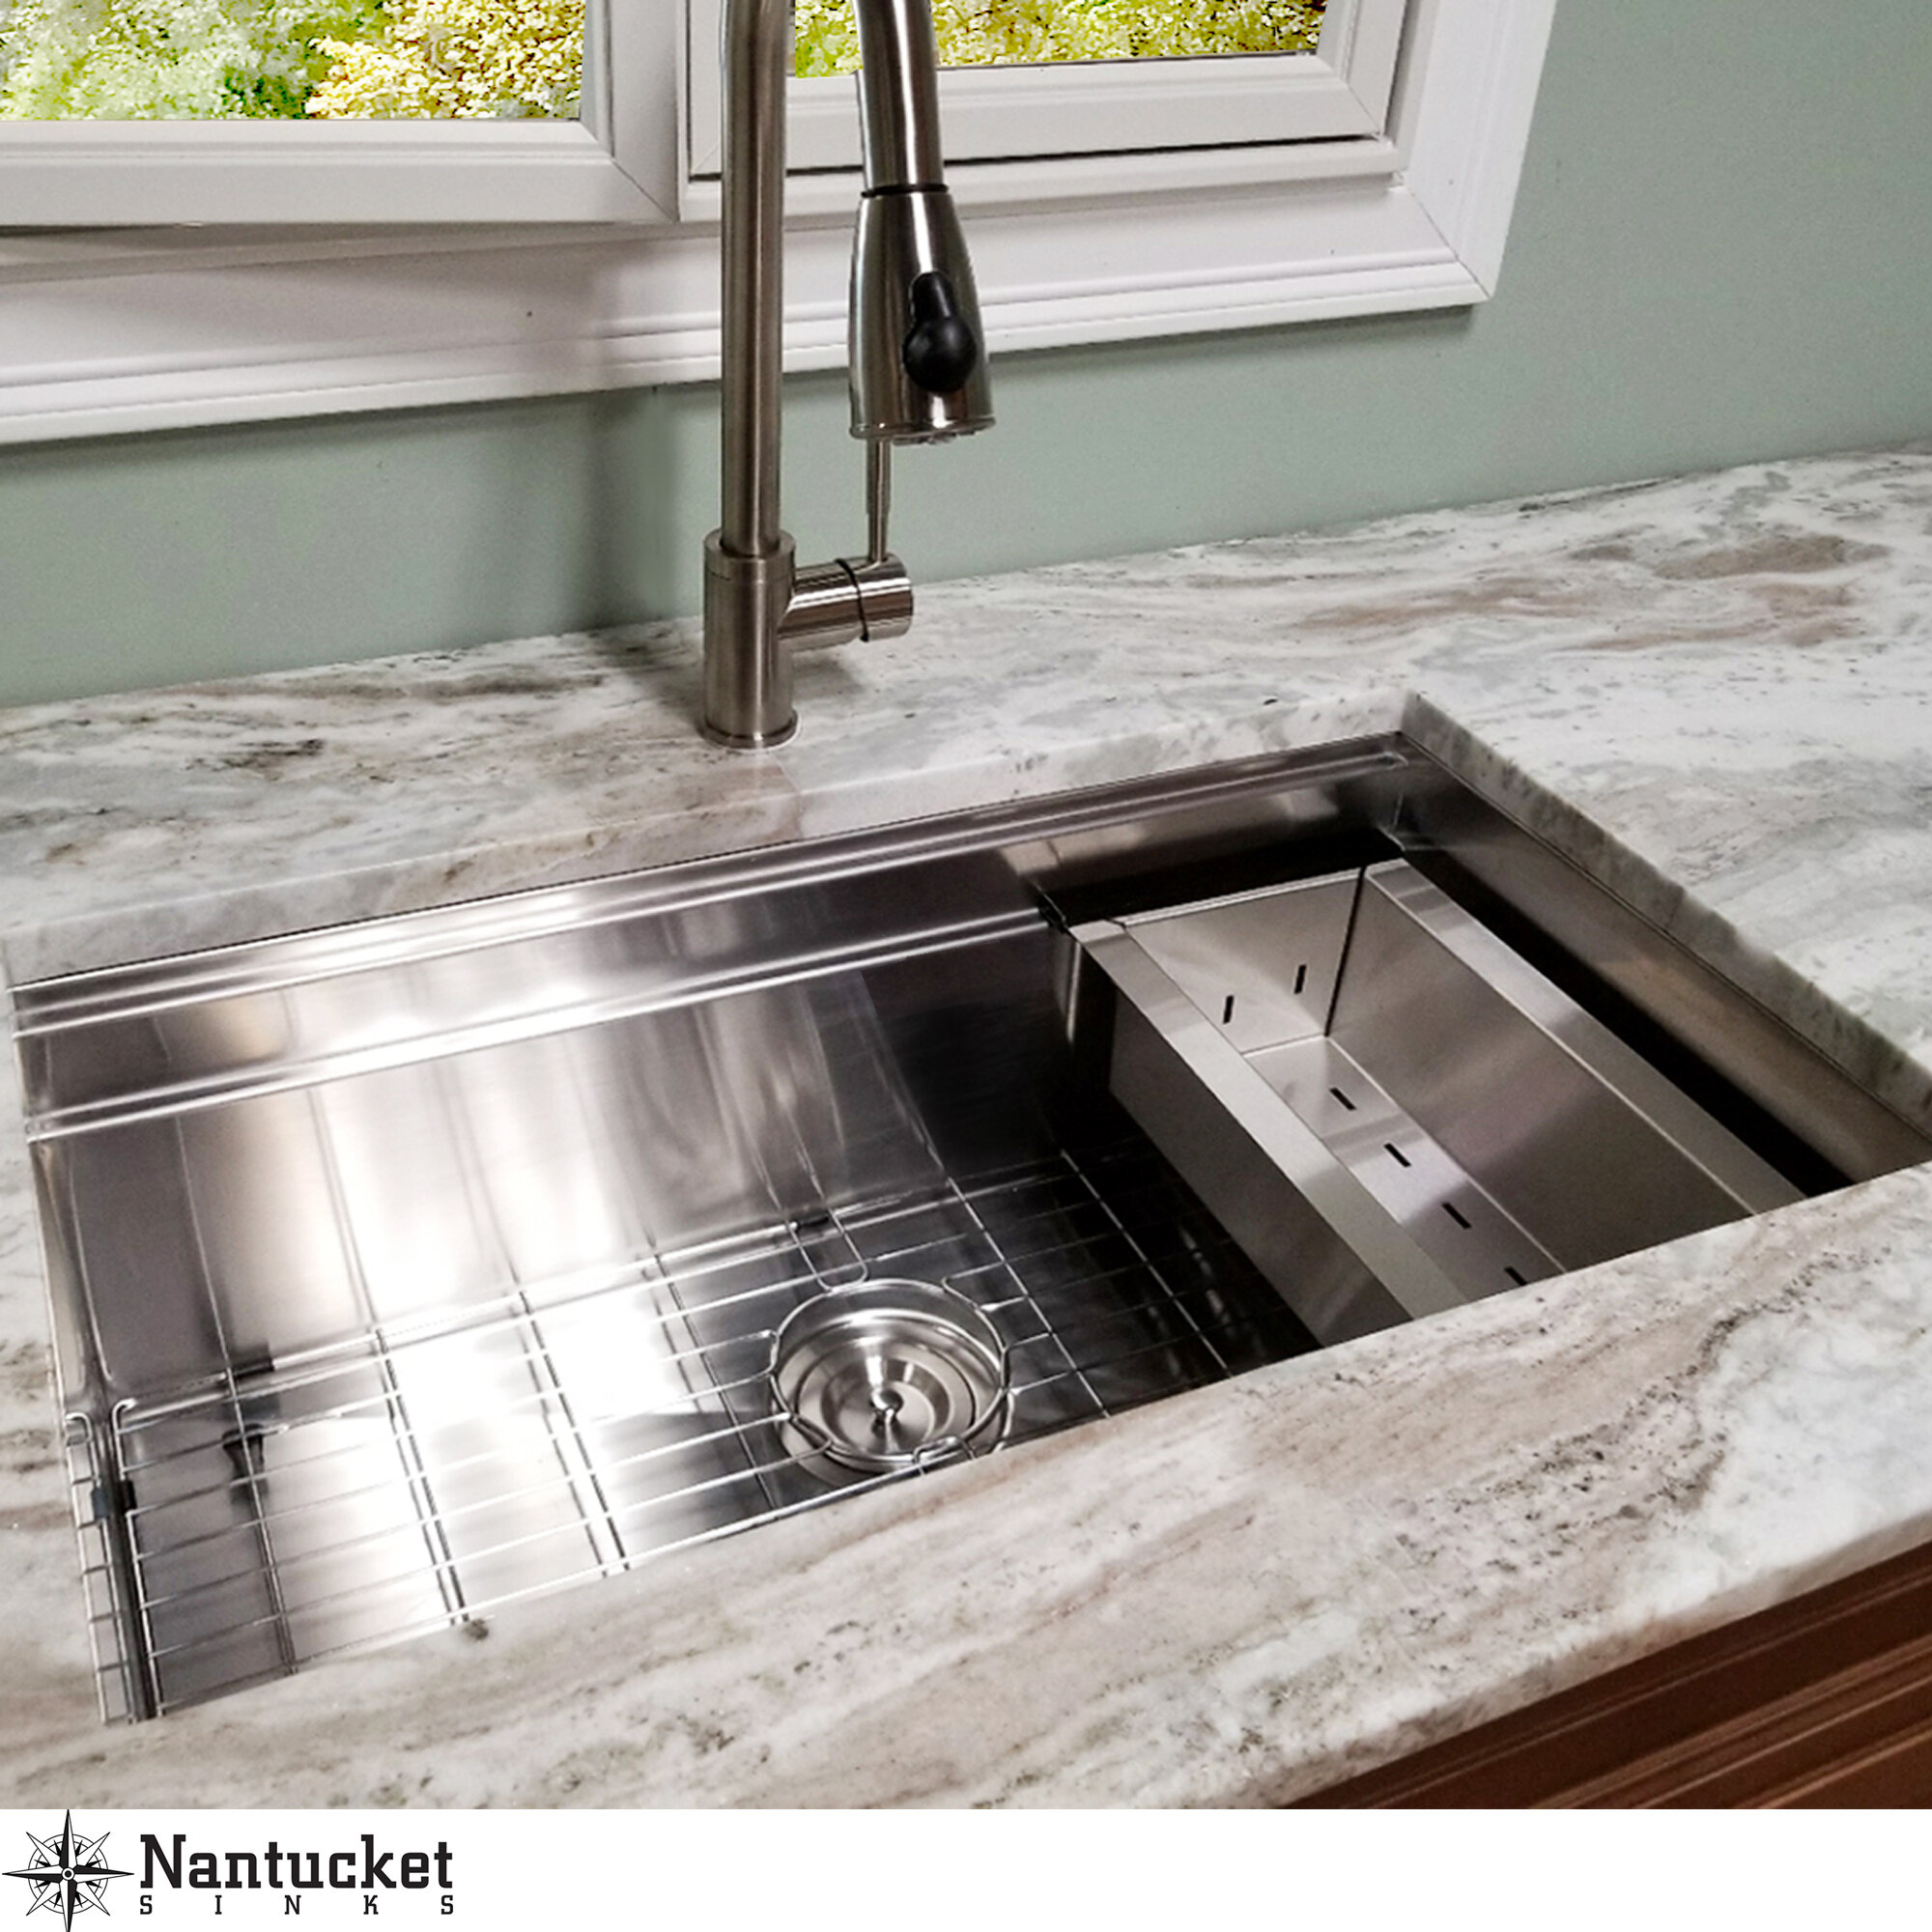 Nantucket Sinks Pro Series 30 L X 18 W Undermount Kitchen Sink With Drain Assembly And Cutting Board Reviews Wayfair